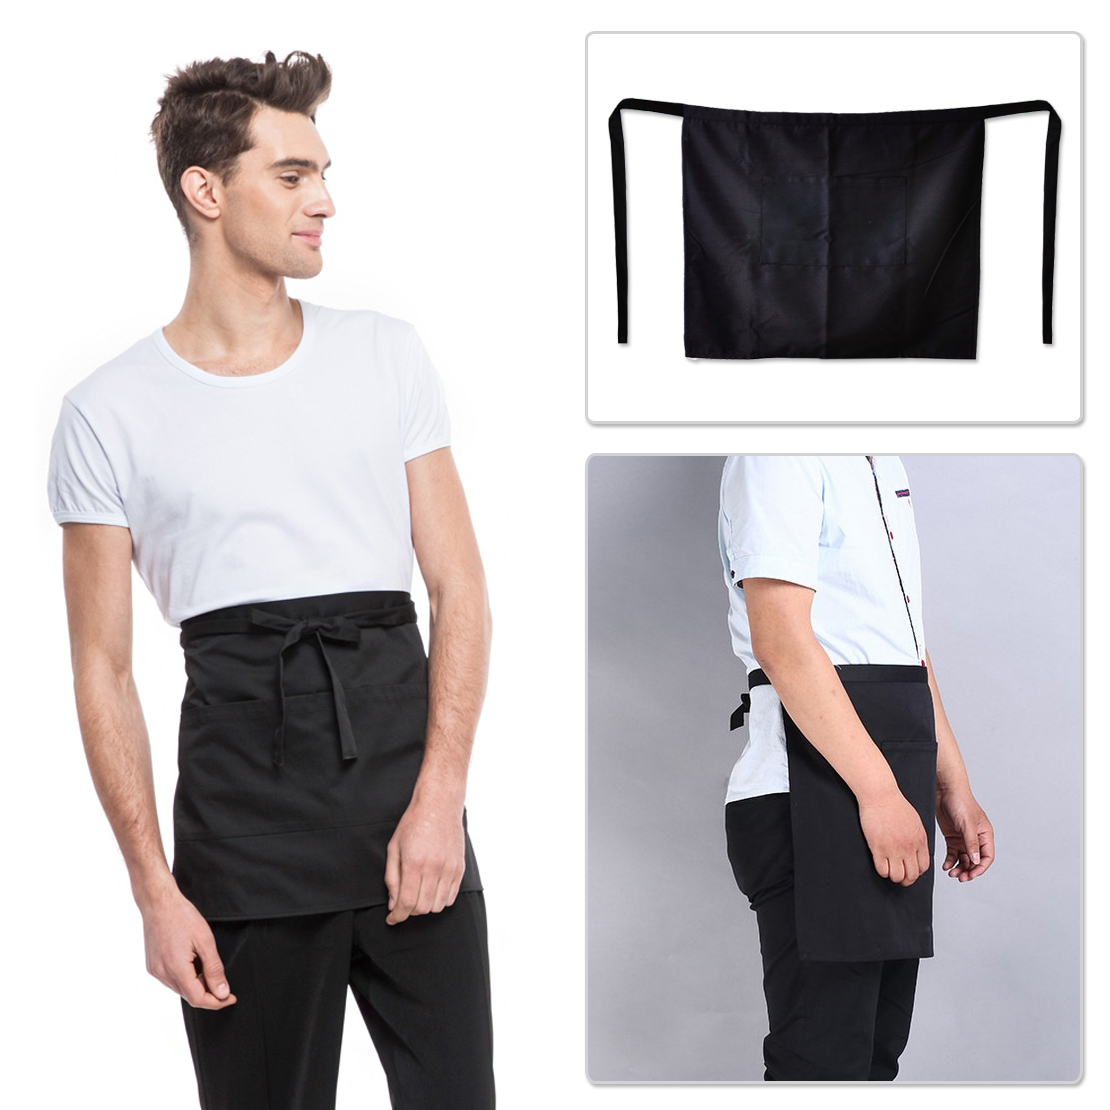 Black Unisex Waiters Waitress Chef Waist Half Short Restaurant Apron Two Pockets for Home Commercial Industrial Adjustable Strap(China (Mainland))